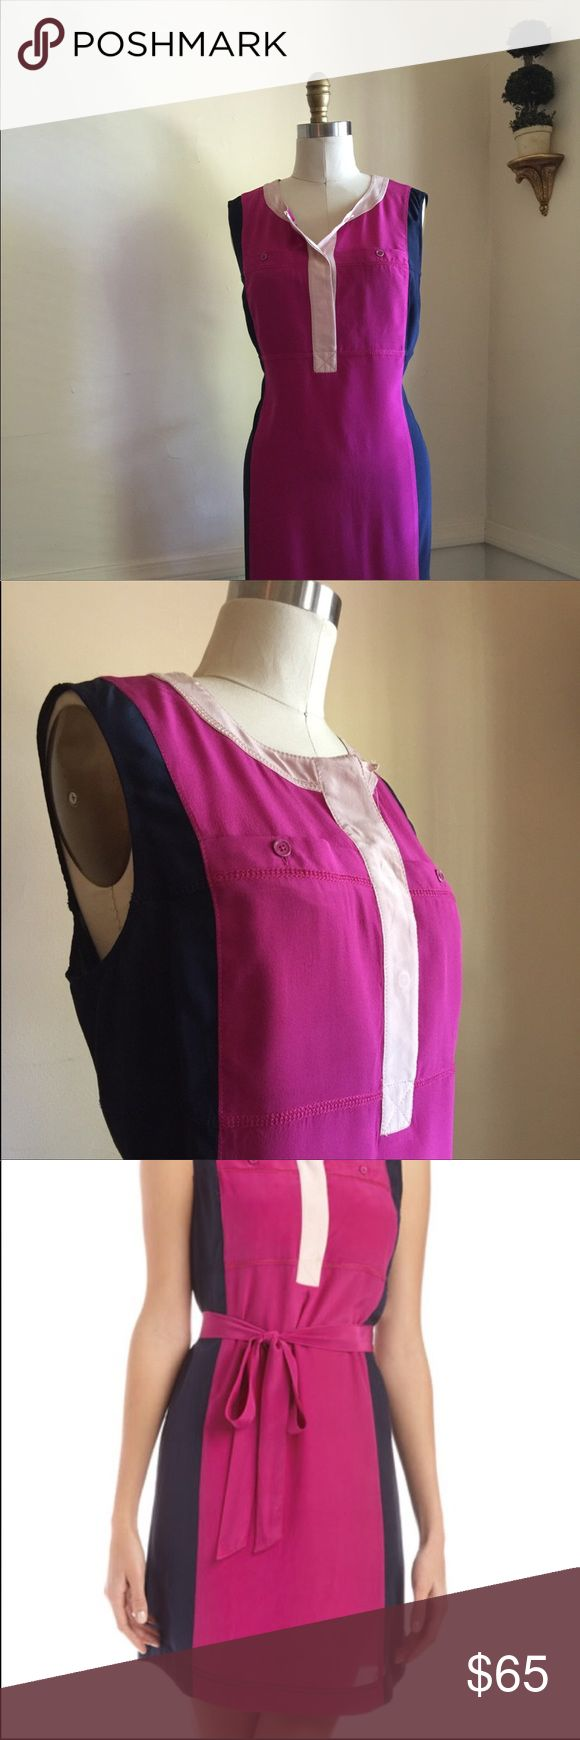 • TORY burch ahirtdress • EUC * Magenta & Navy * Silk * Colorblock Construction * Sophisticated & Stylish * Chest pockets * Back Pleating * Chest 42 * Length 37 * Missing Pink Sash (Dress is meant to be cinched) Tory Burch Dresses